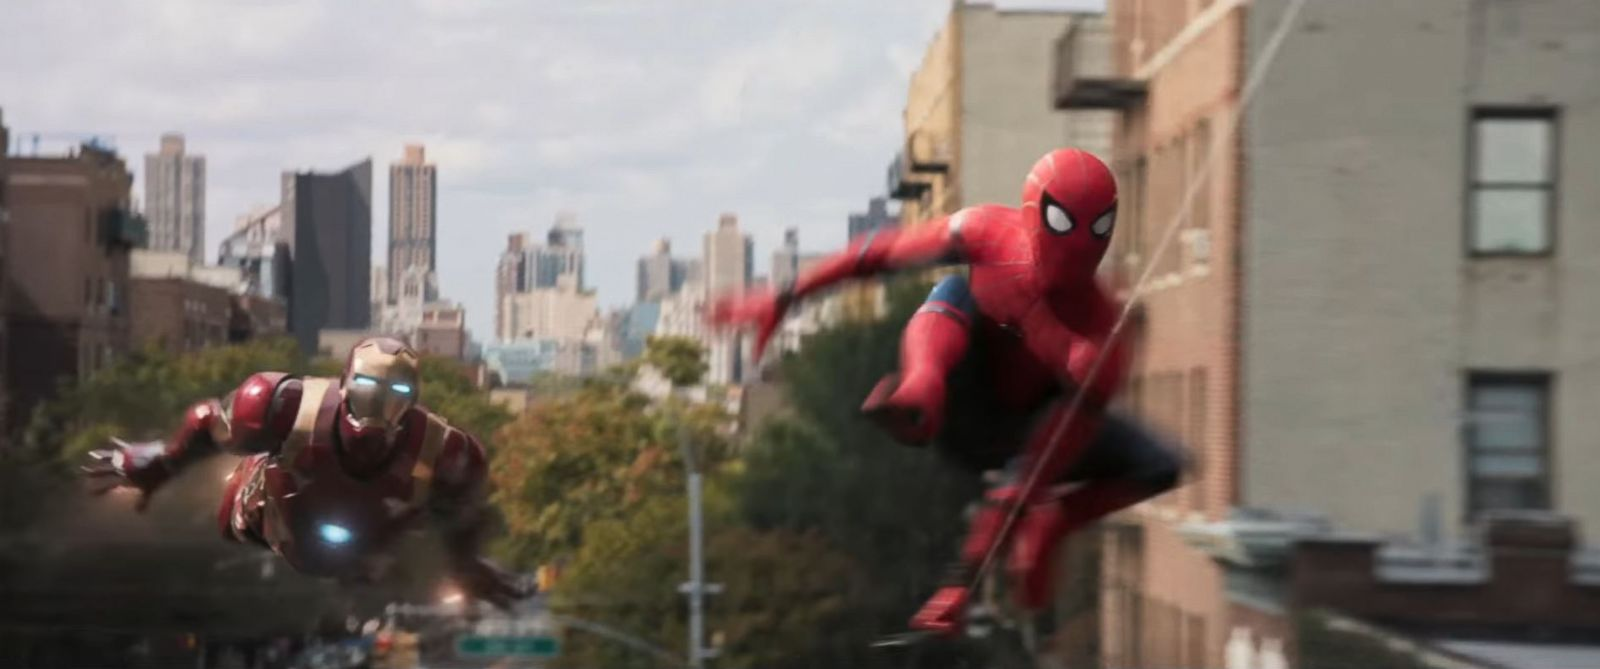 spider man homecoming everything you need to know from 1st